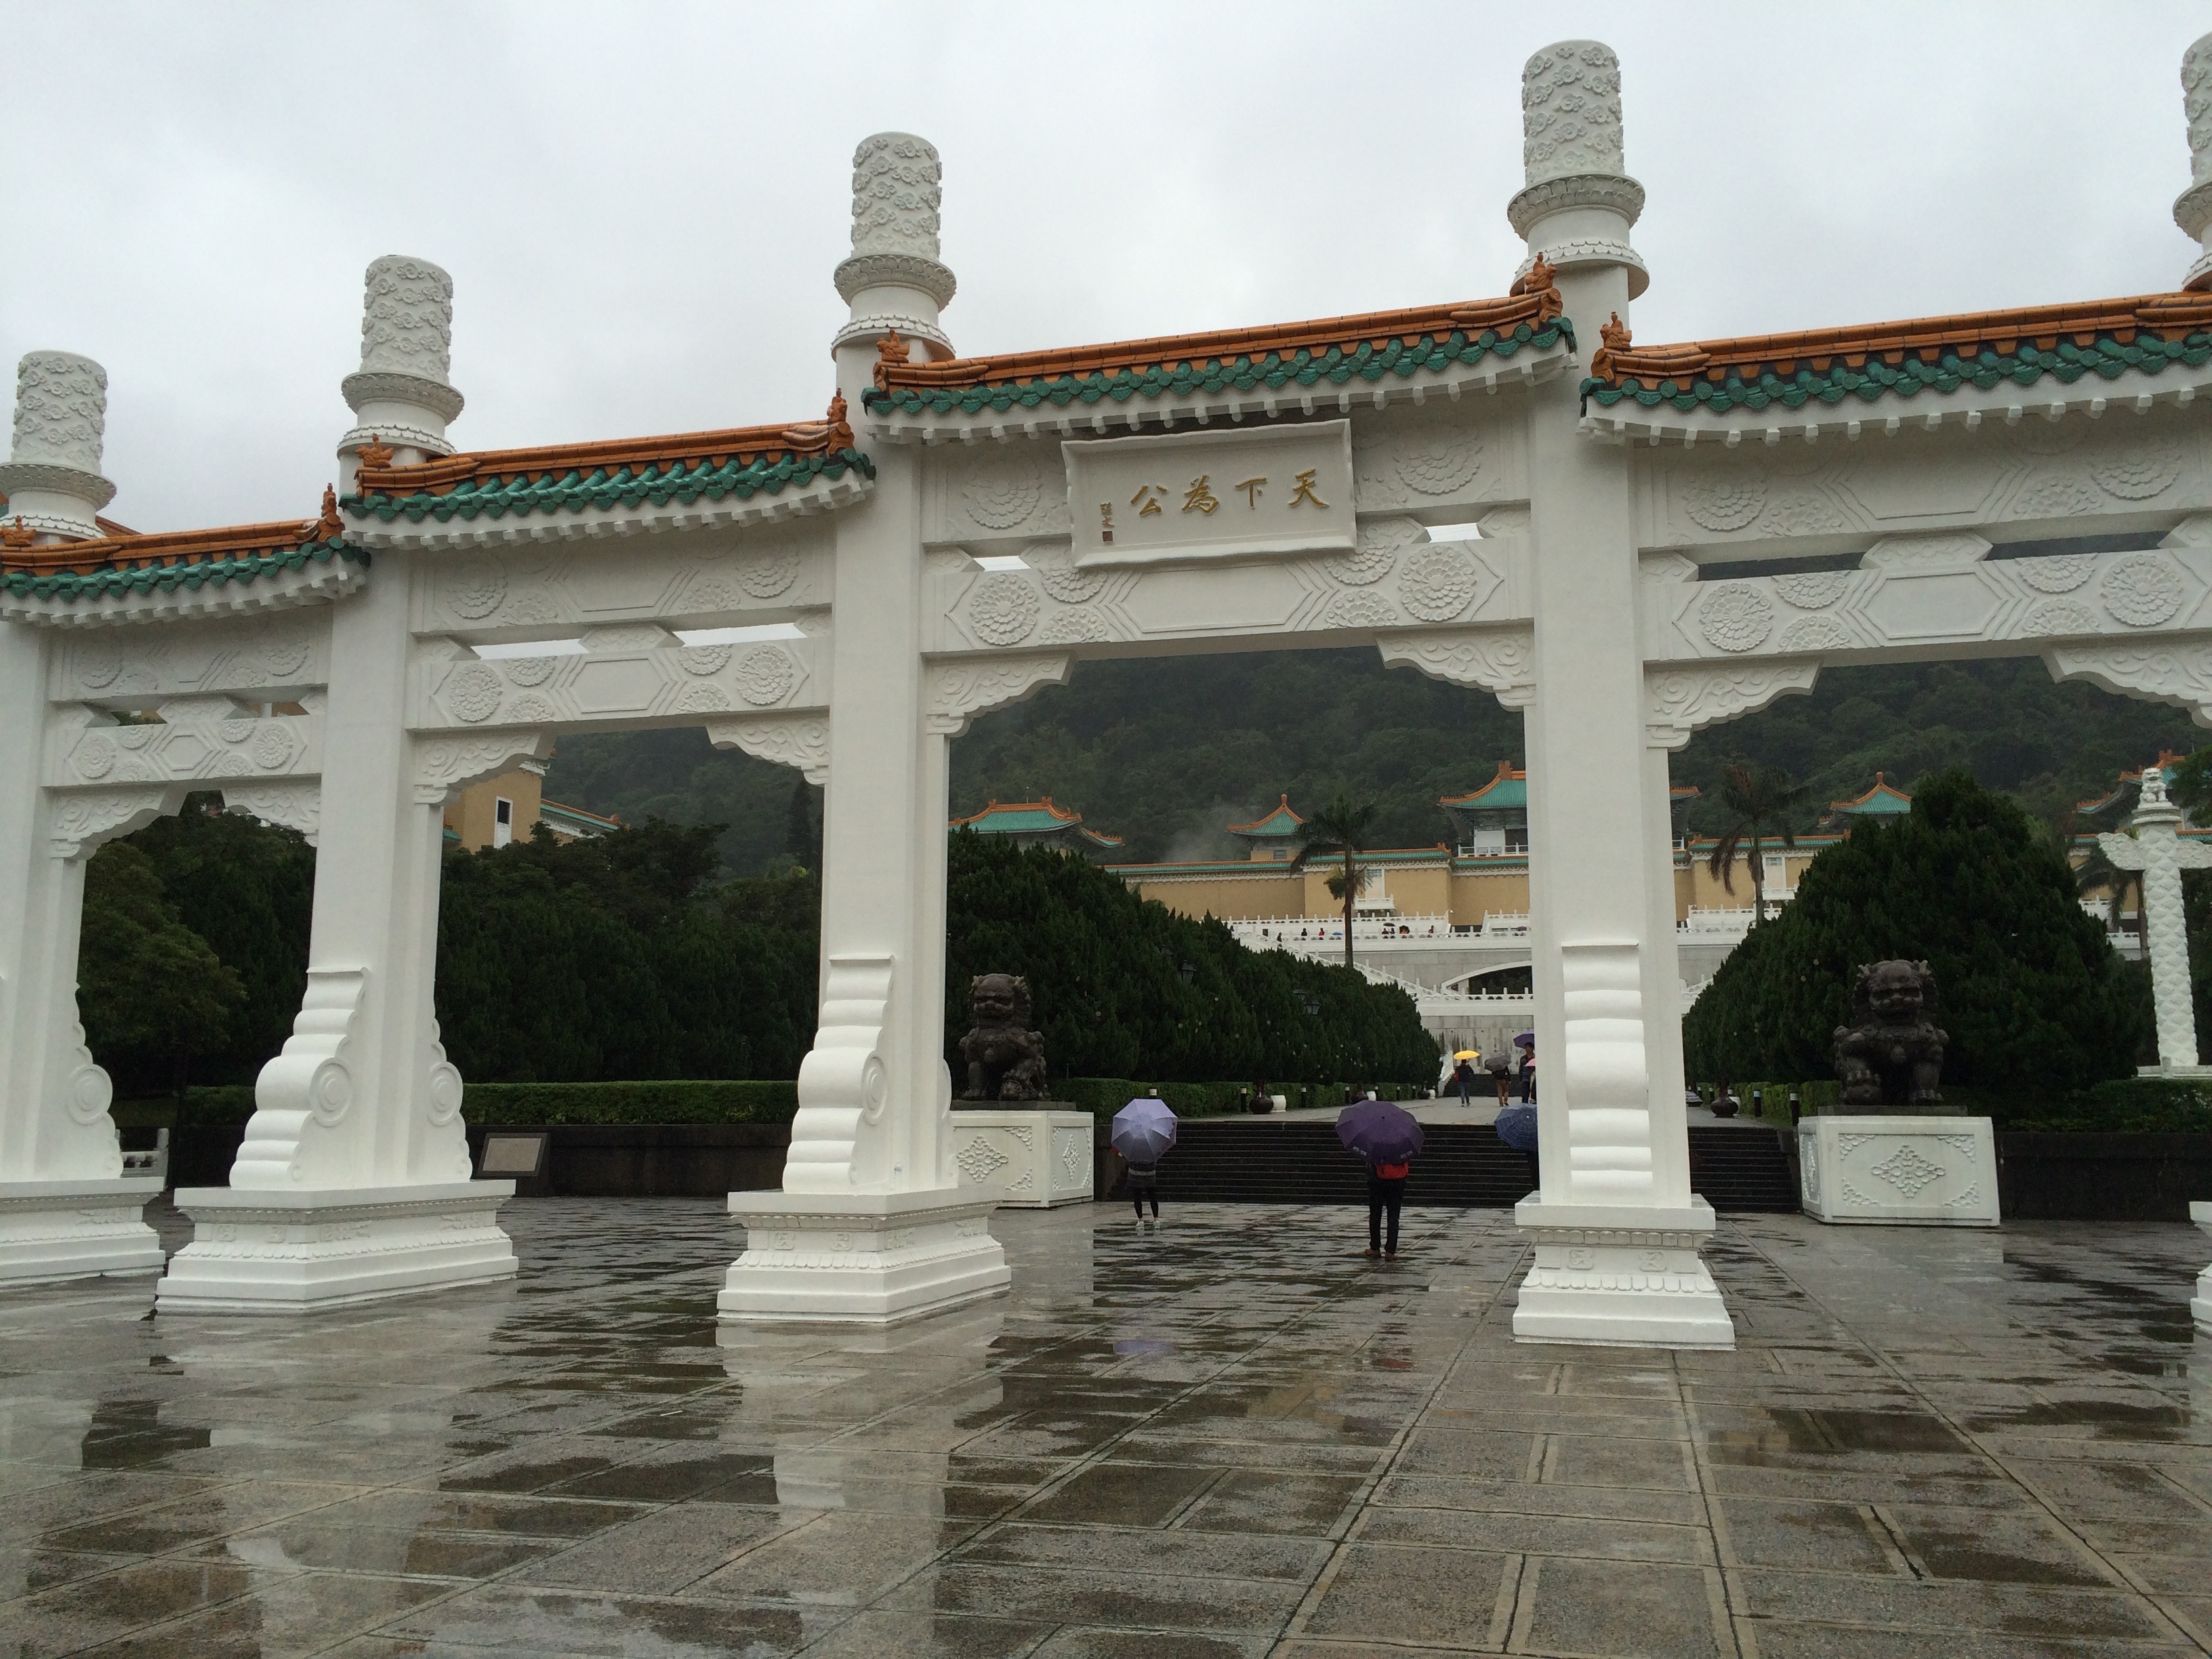 Gate at the National Palace Museum in Taipei